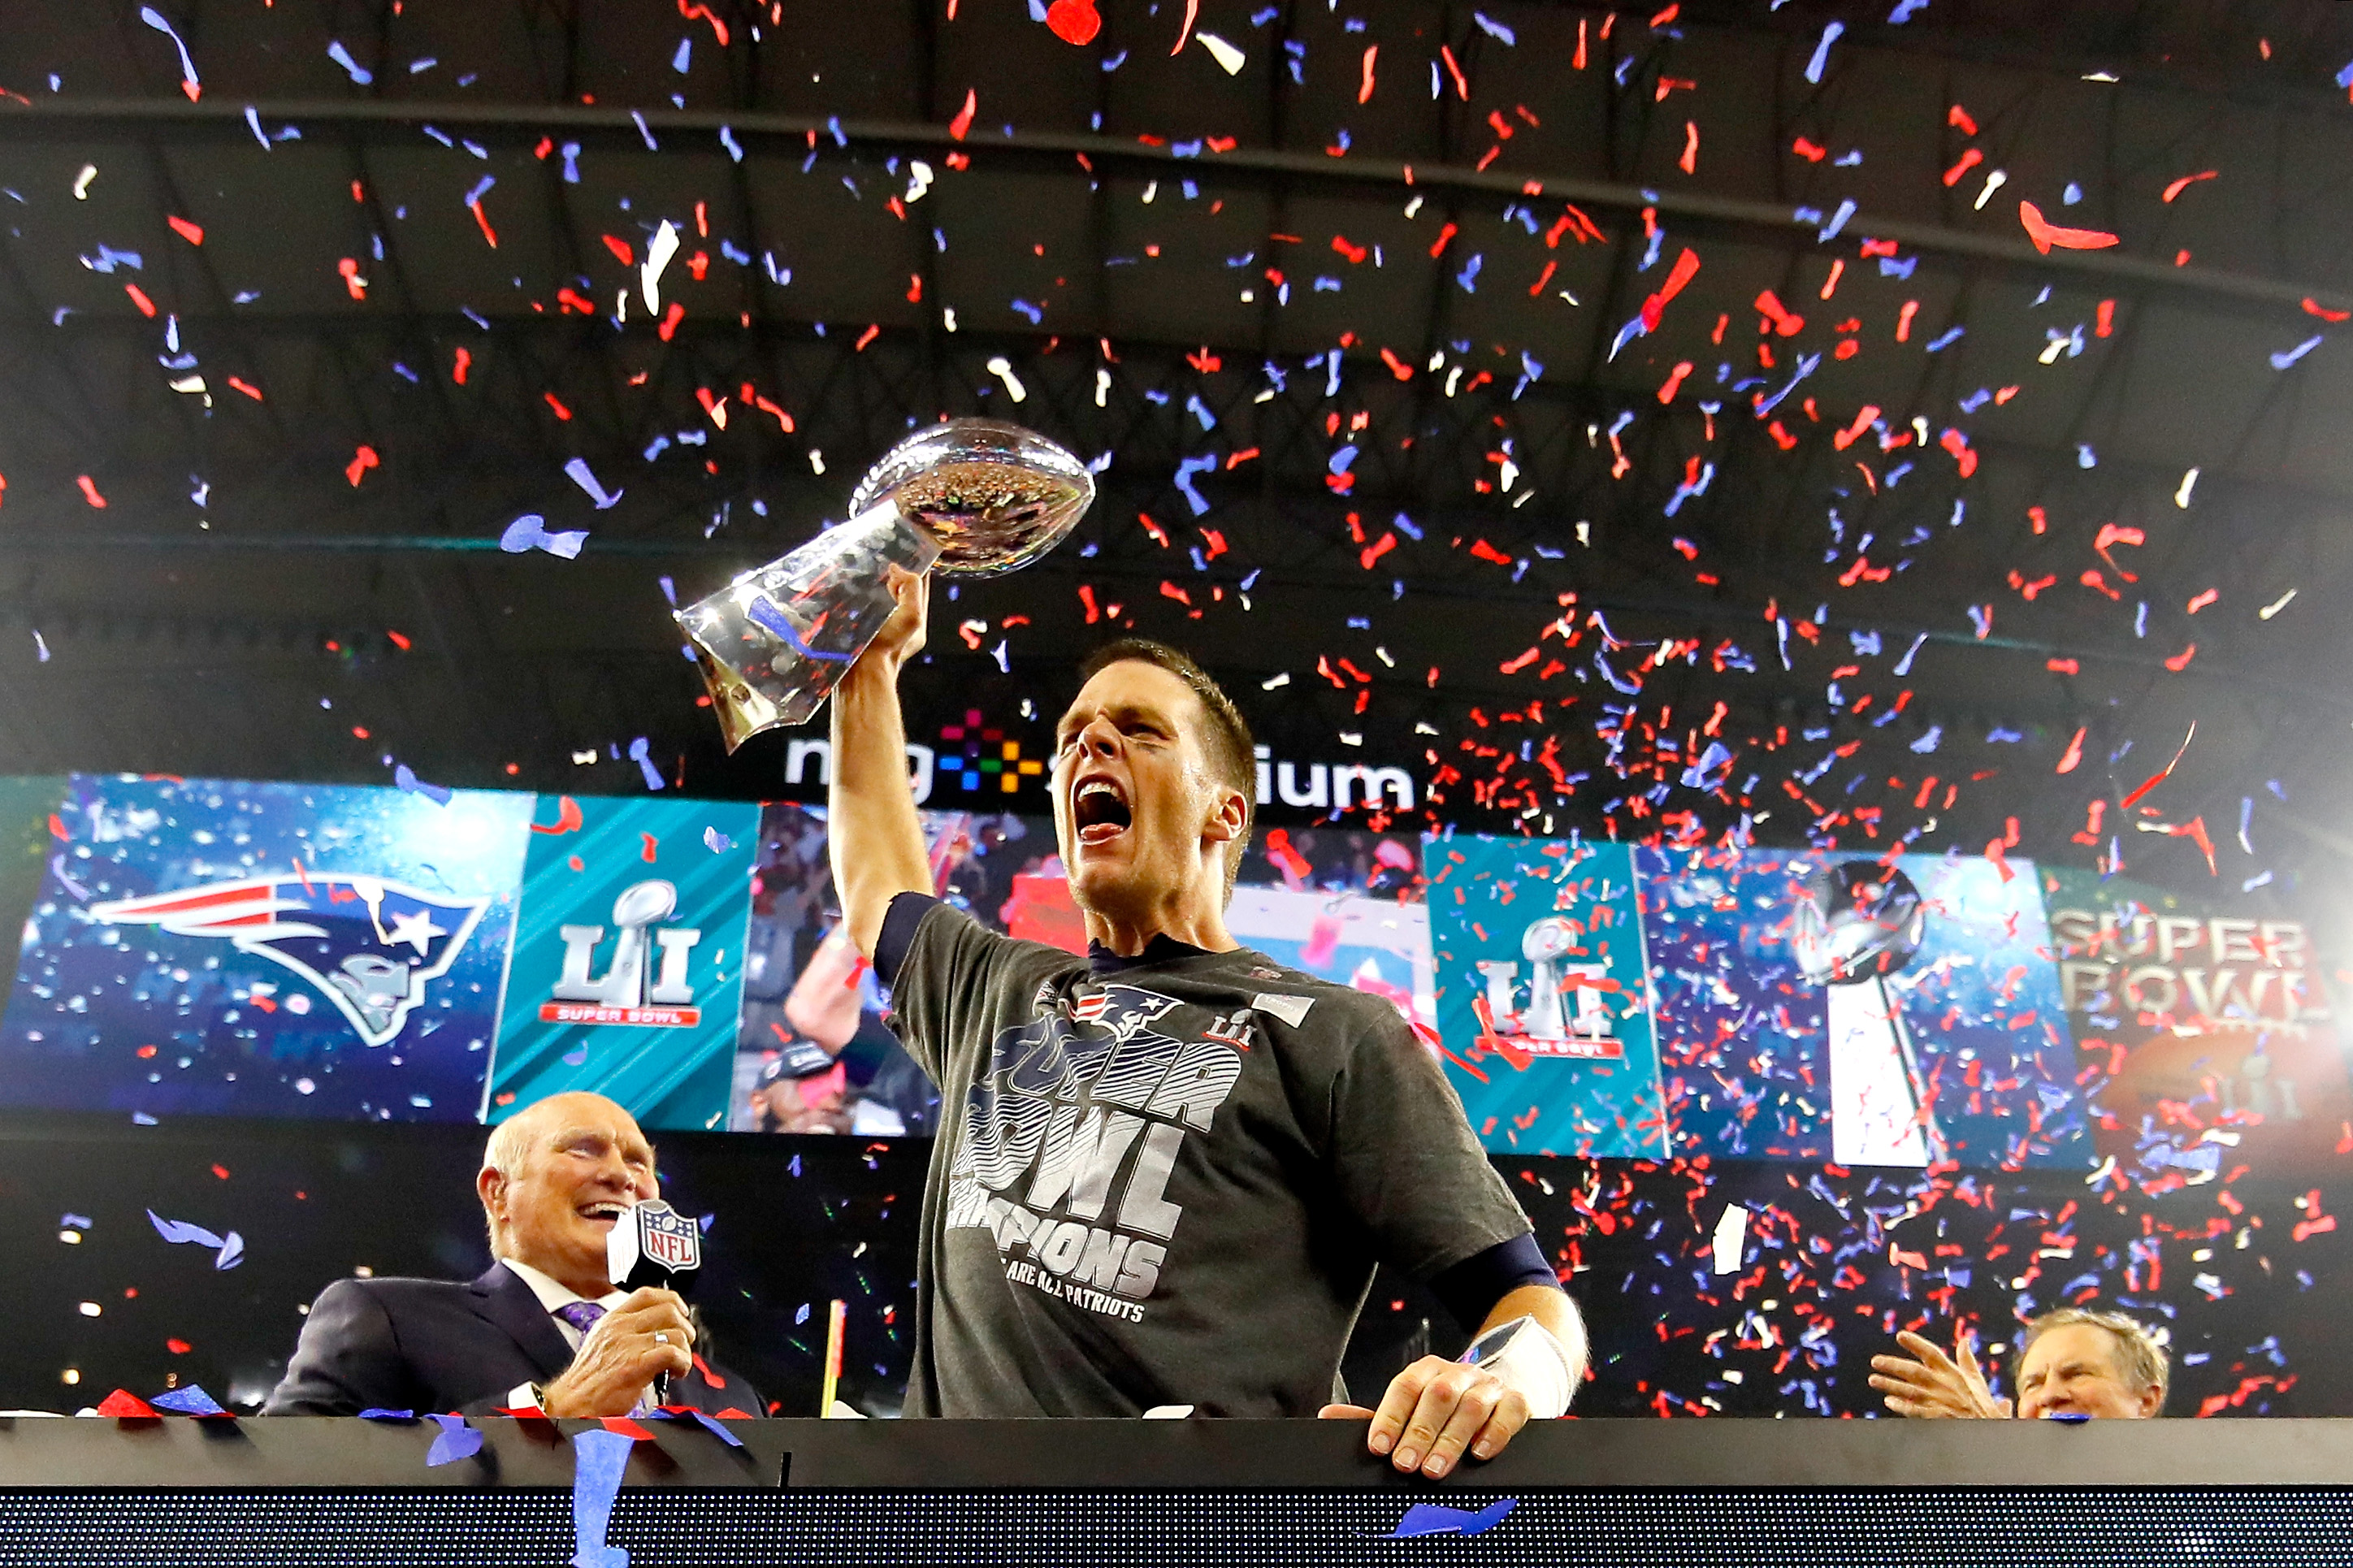 Super Bowl 51 completes a historic streak of sports having incredible championships